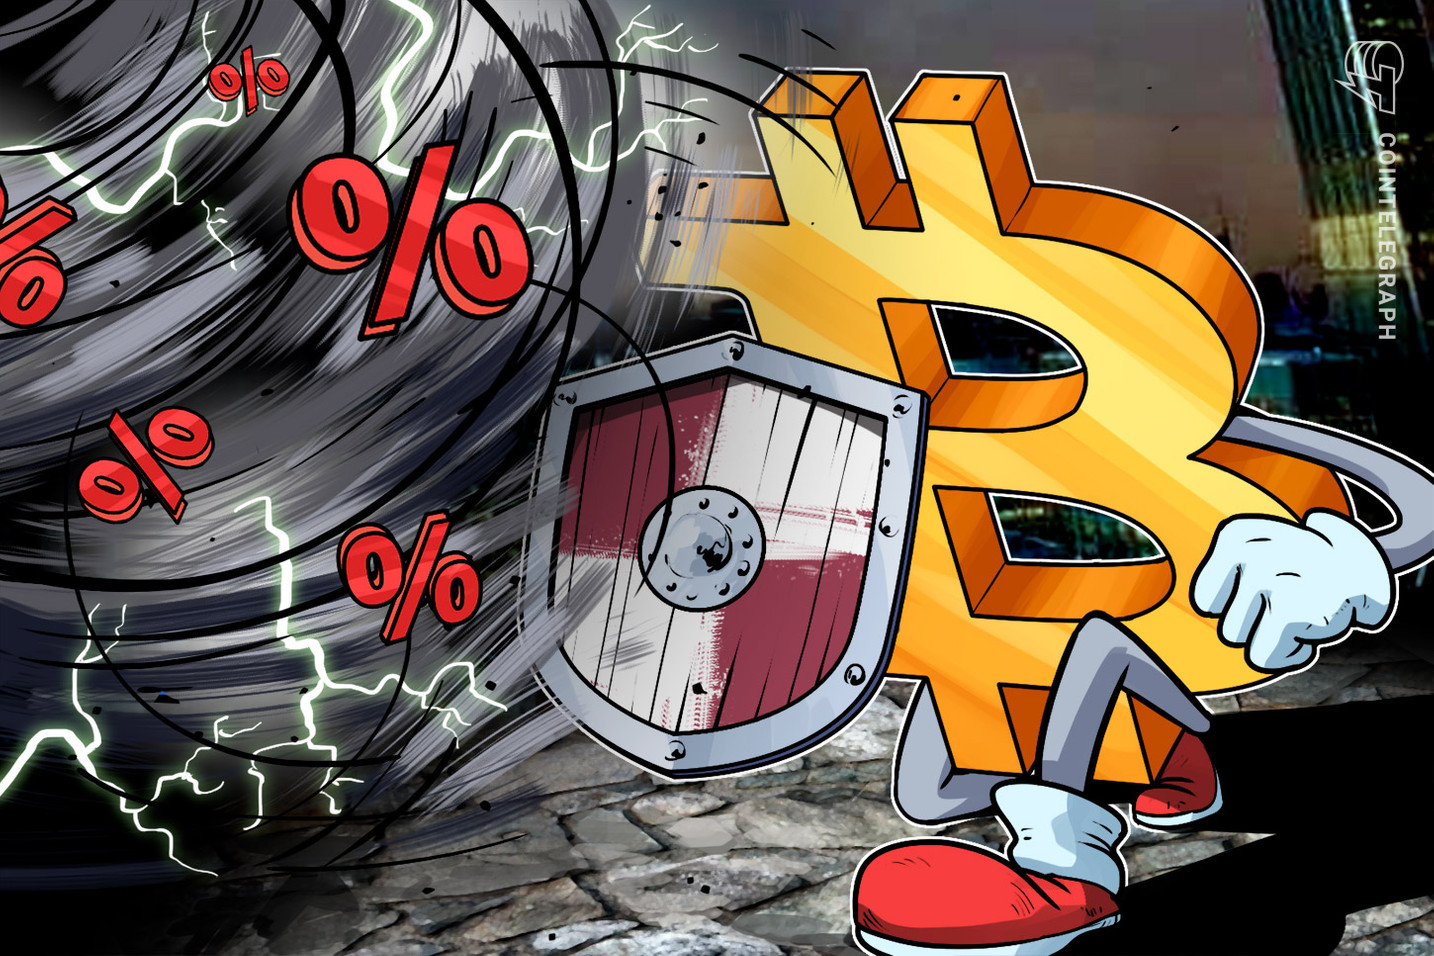 Negative Interest Rates Give BTC an Opportunity to Shine, Report Claims